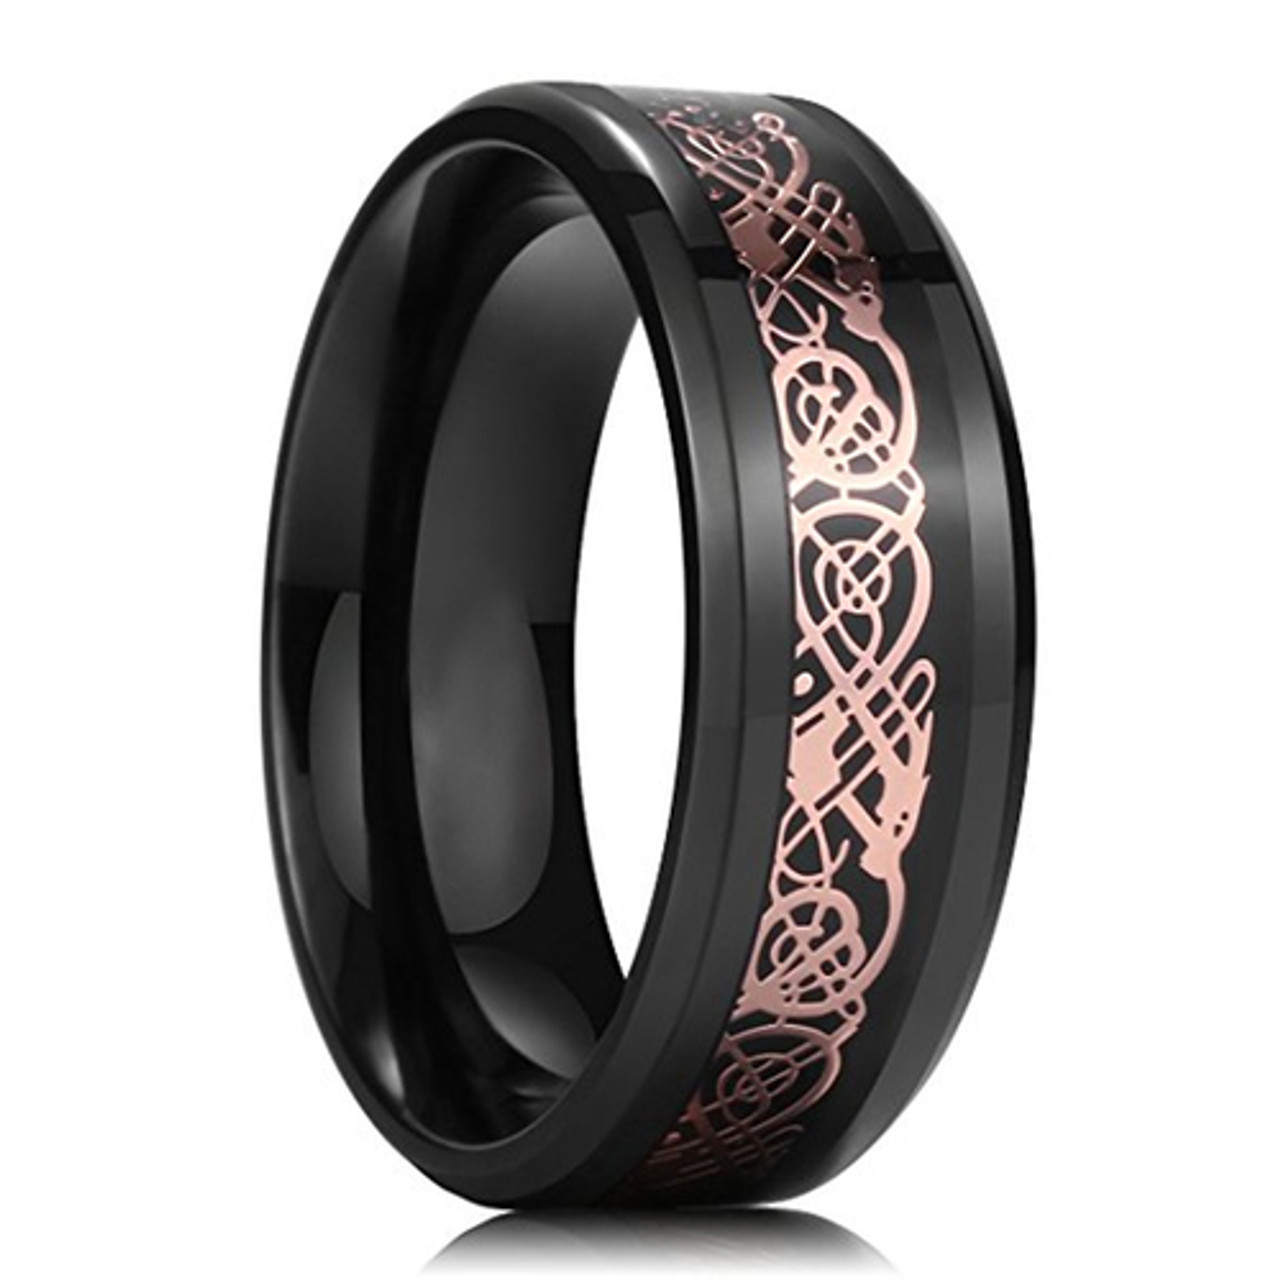 8mm Unisex Or Men S Ceramic Wedding Ring Band Celtic Knot Ring With Rose Gold And Black Resin Inlay Ring Blingers